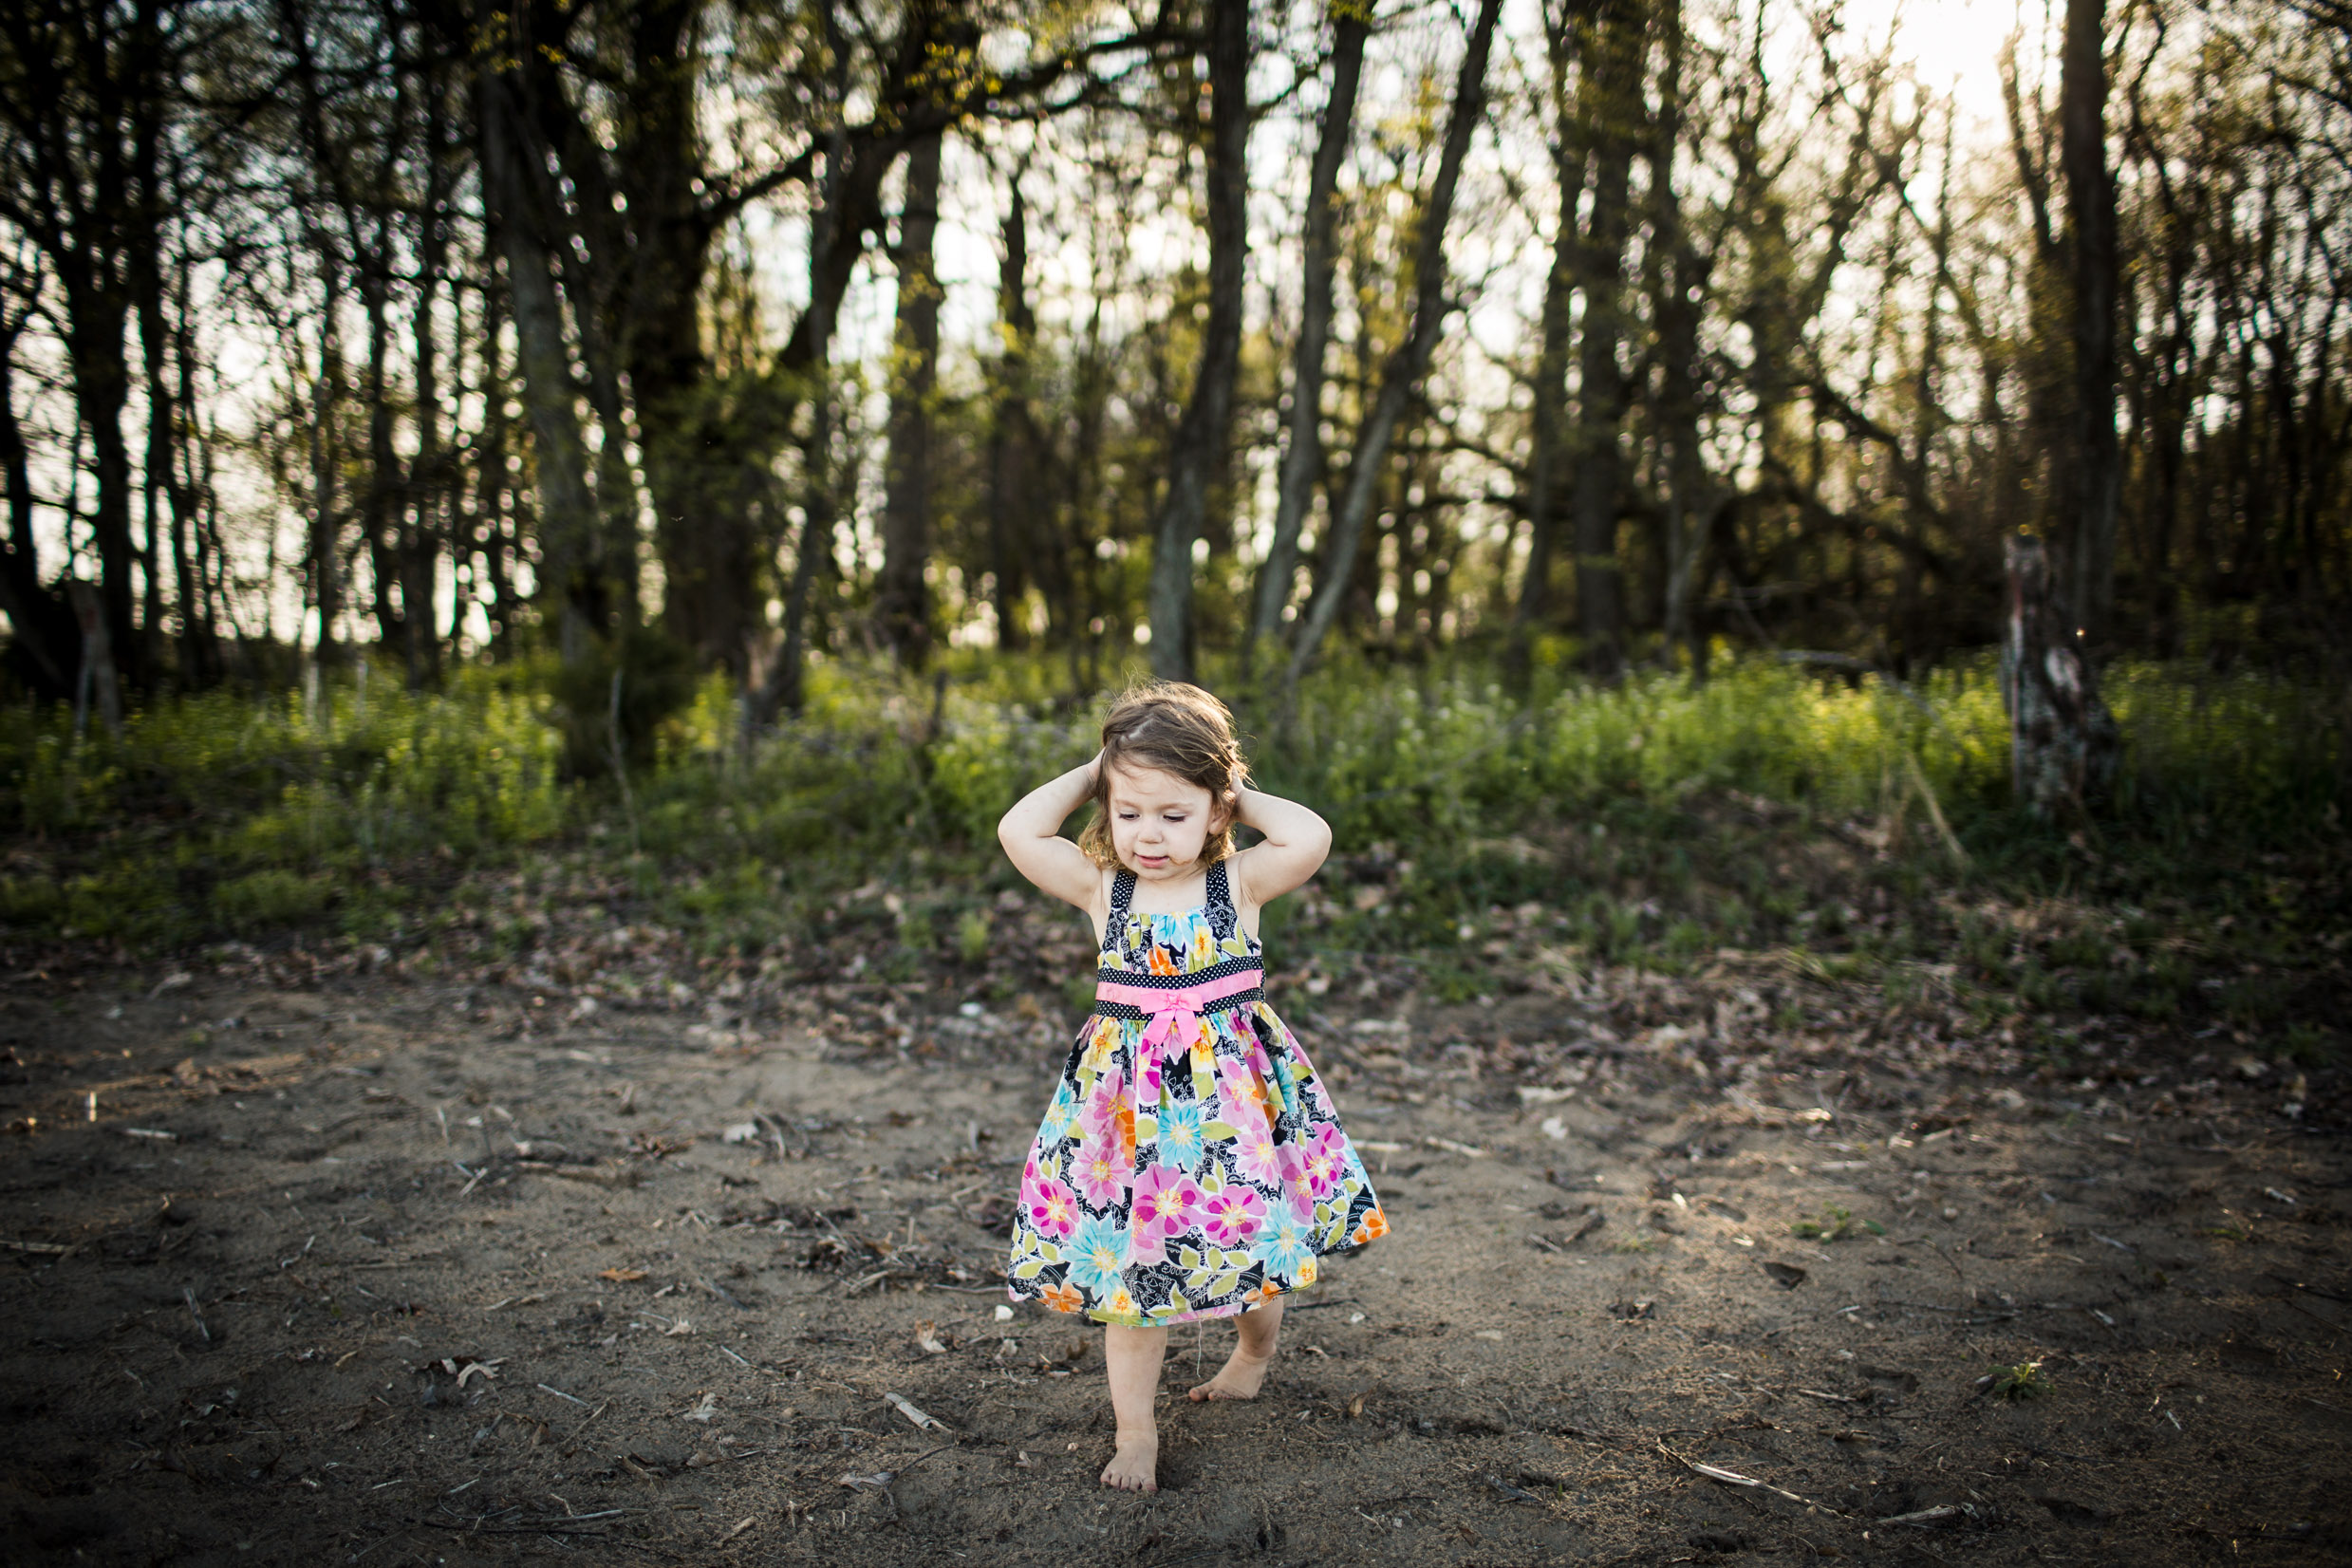 Exploring, Connected, Powerful, Lifestyle Family Sunset Session, Farm, Indiana, Laura Duggleby Photography-30.JPG